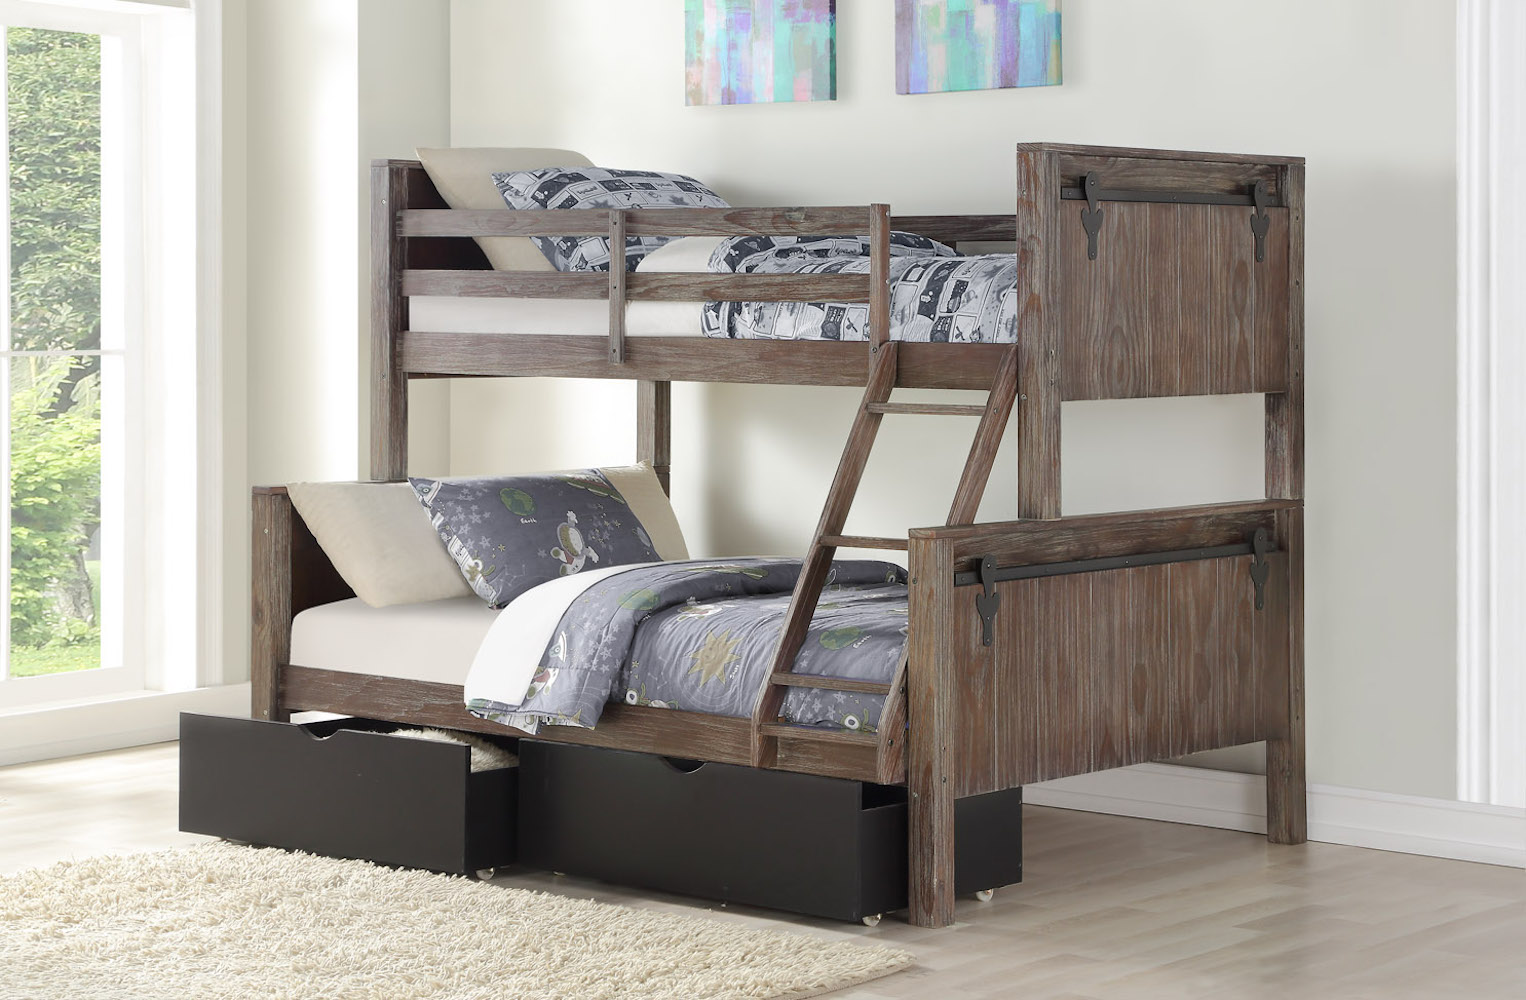 Donco Kids Twin Door Bunkbed